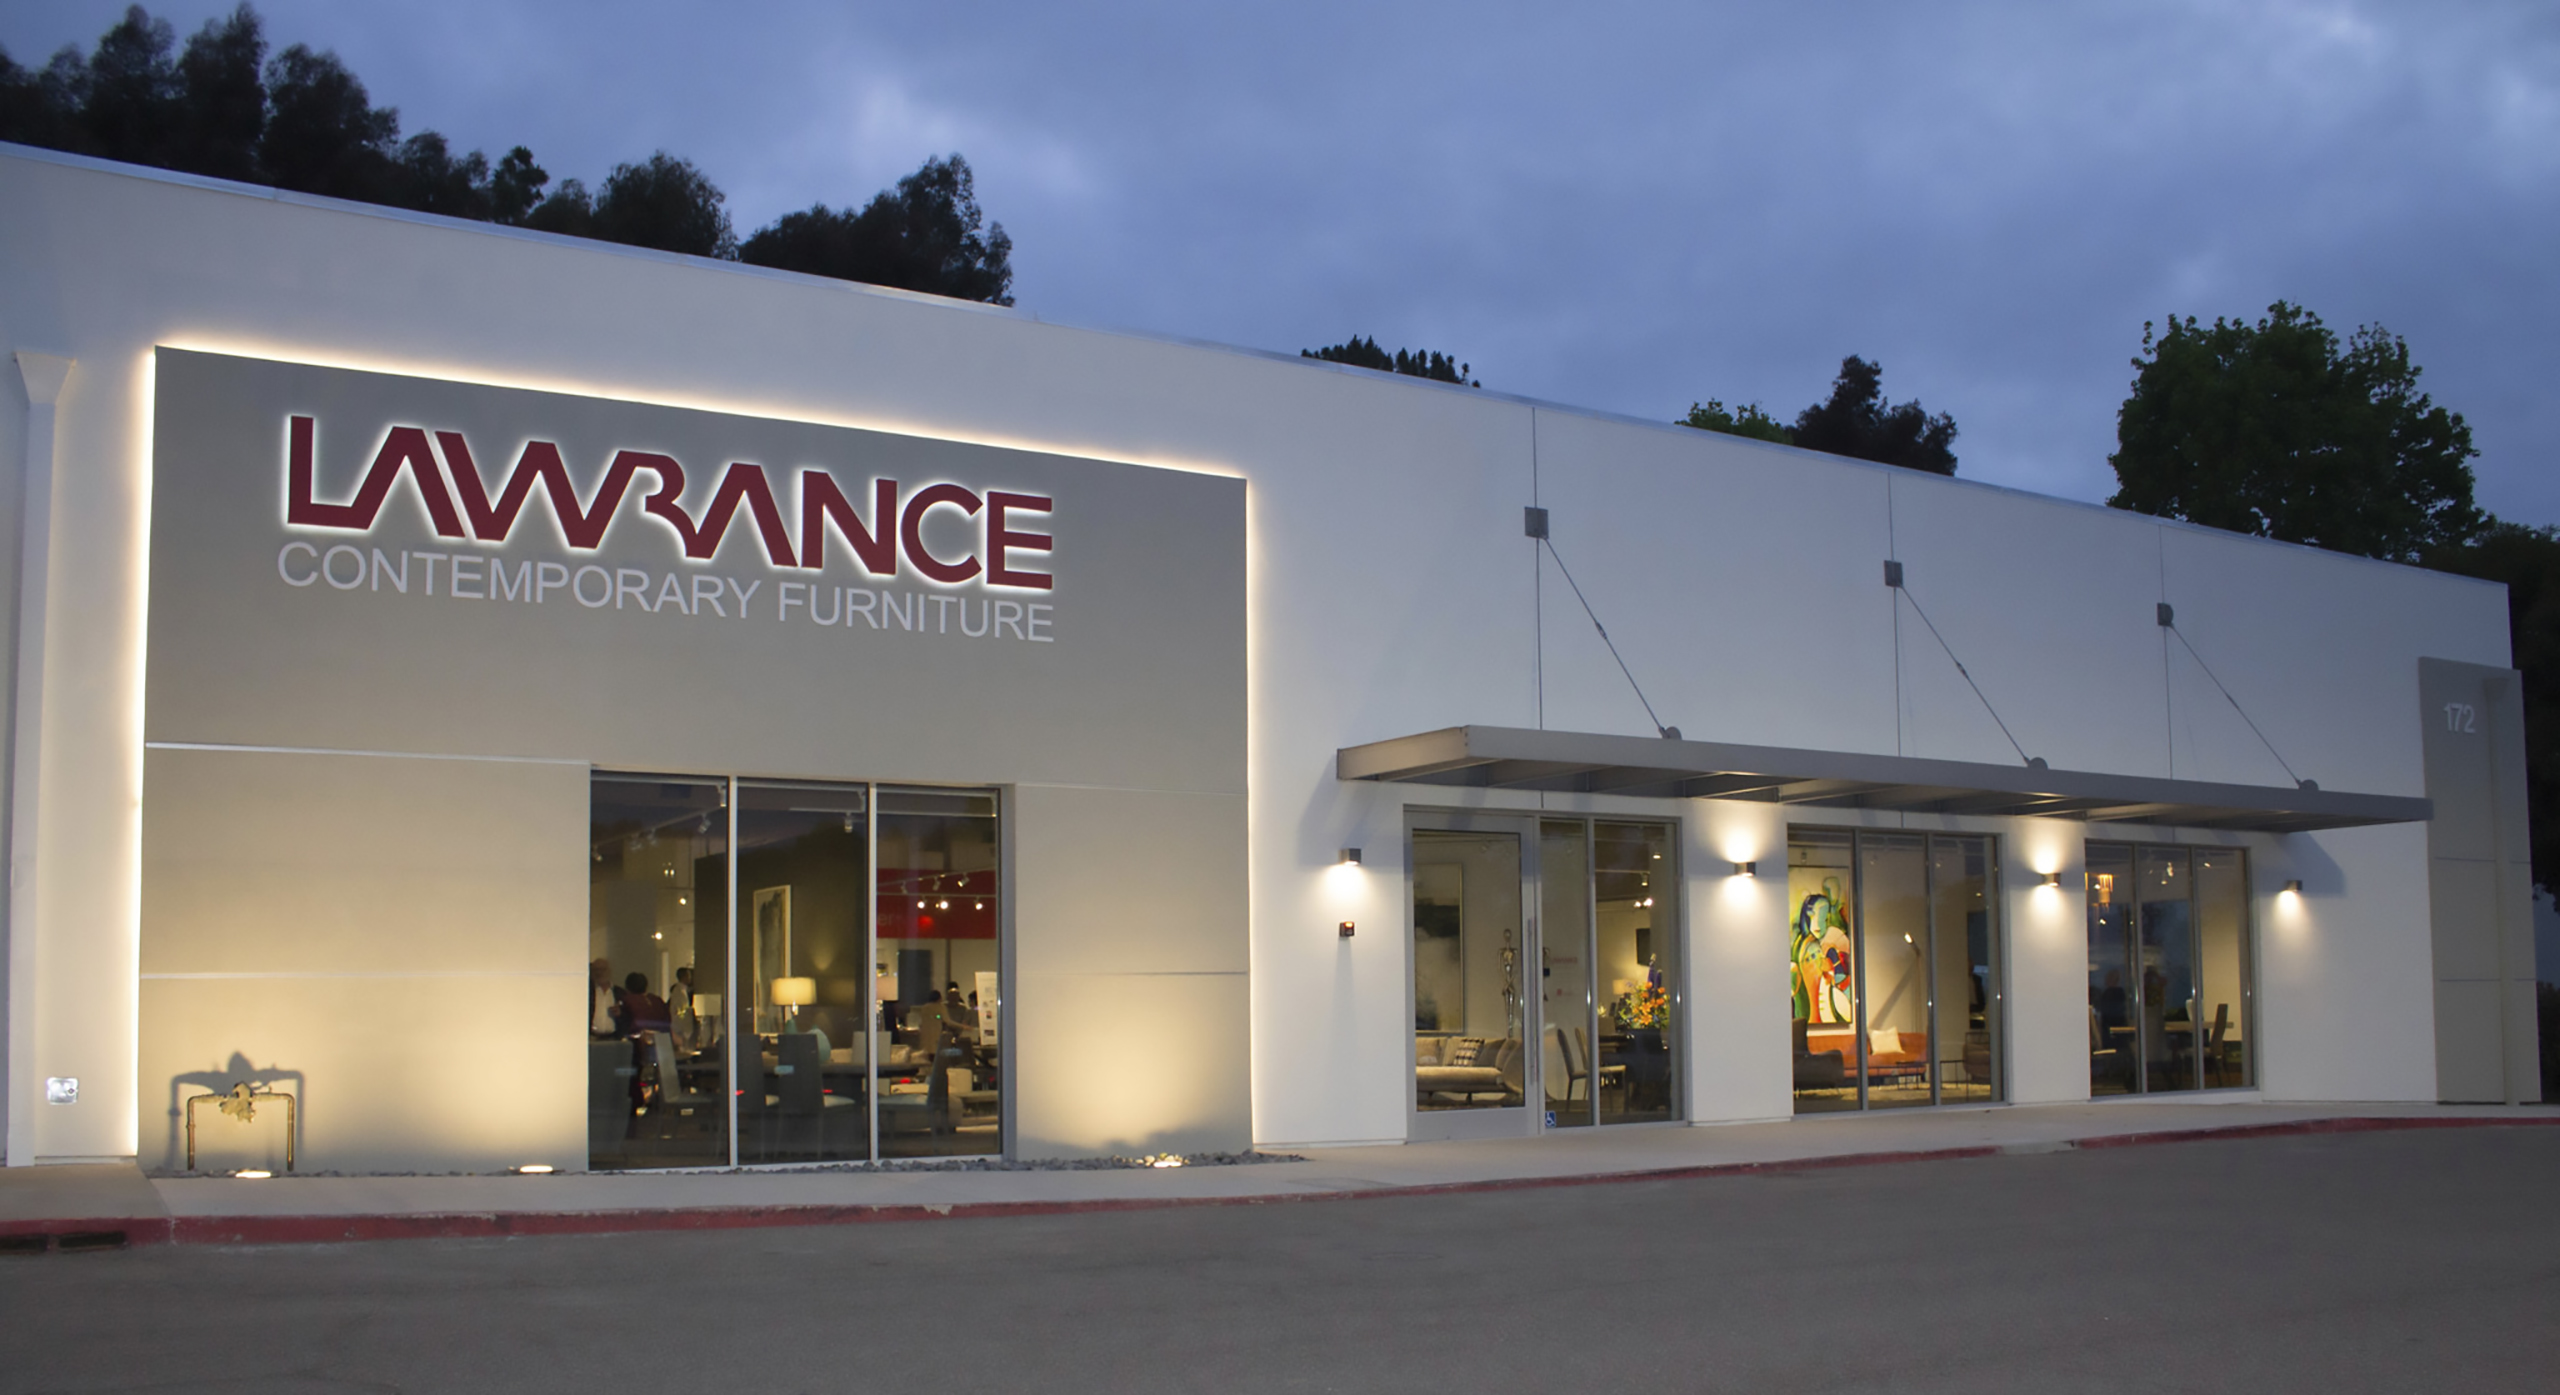 Encinitas' icon Lawrance Furniture showroom has a new home